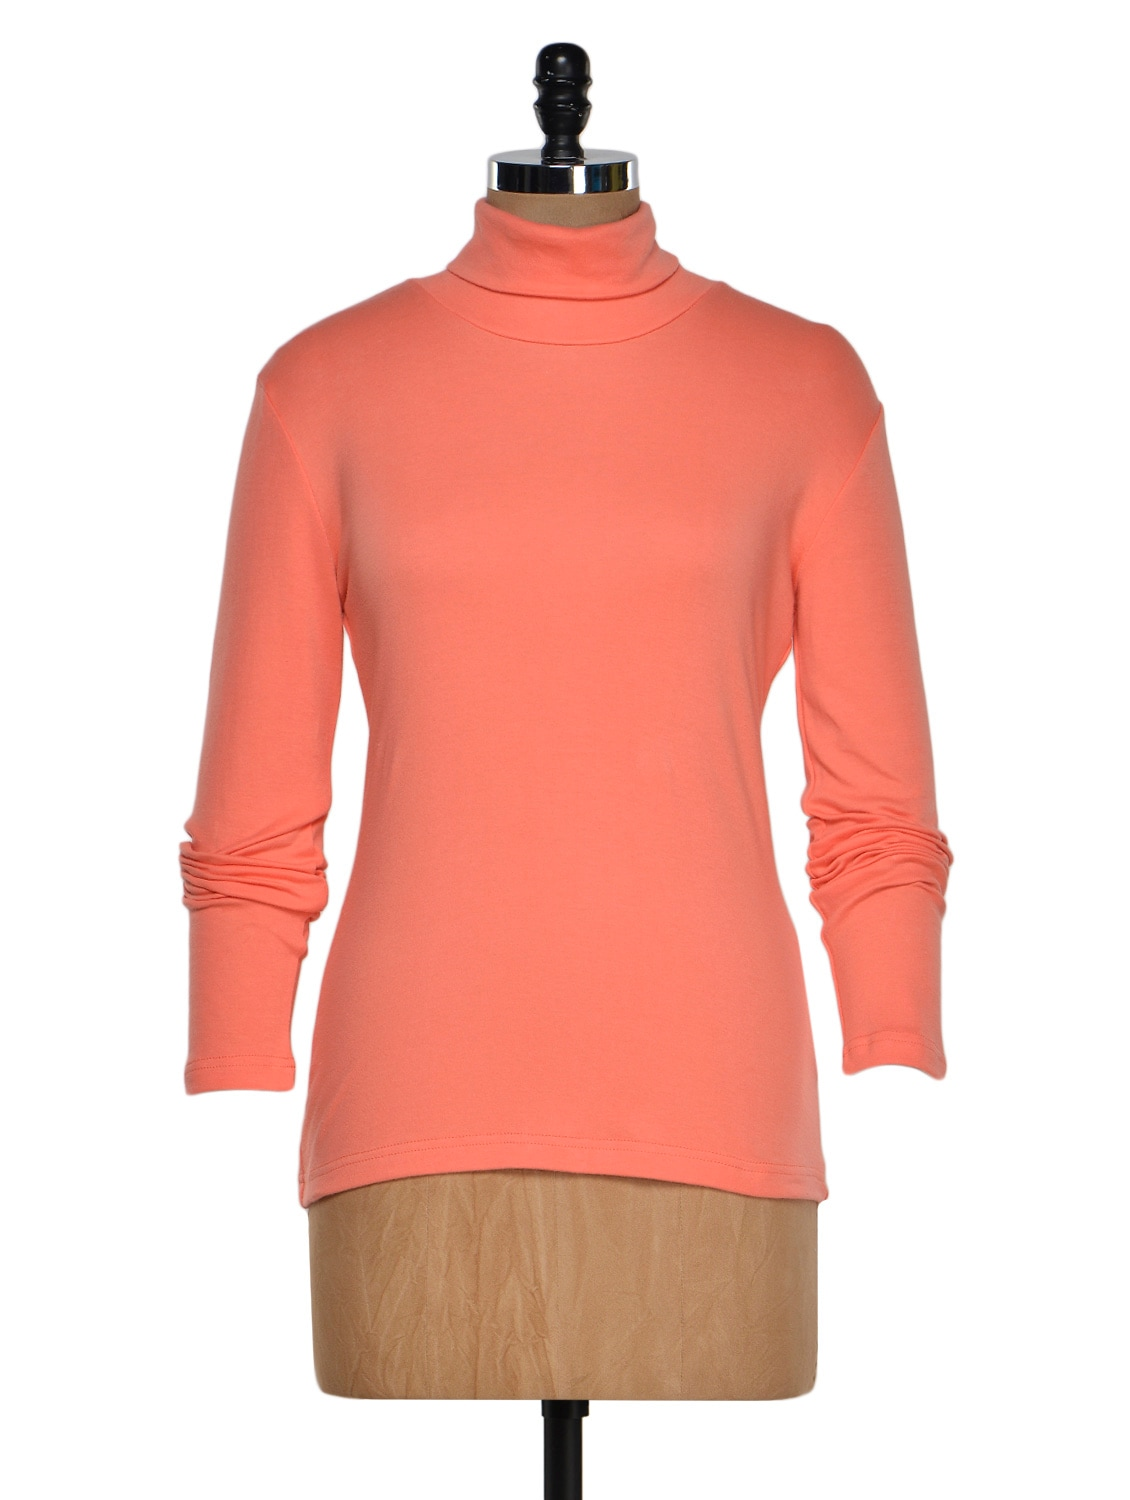 Coral Color Full Sleeves Casual High Neck T-shirt - Hypernation